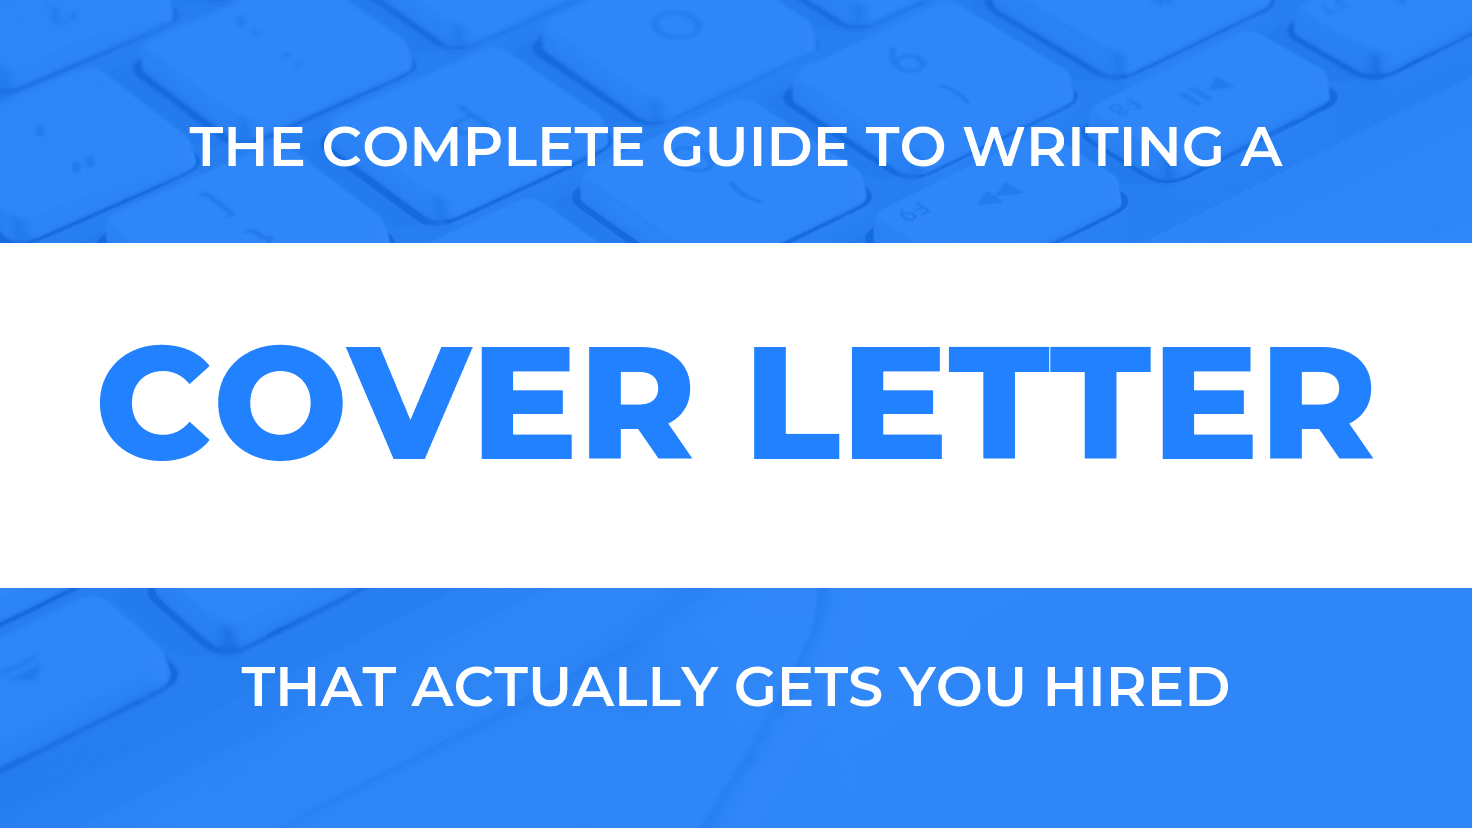 Microsoft Certified Trainer Cover Letter How To Write An Amazing Cover Letter That Will Get You Hired